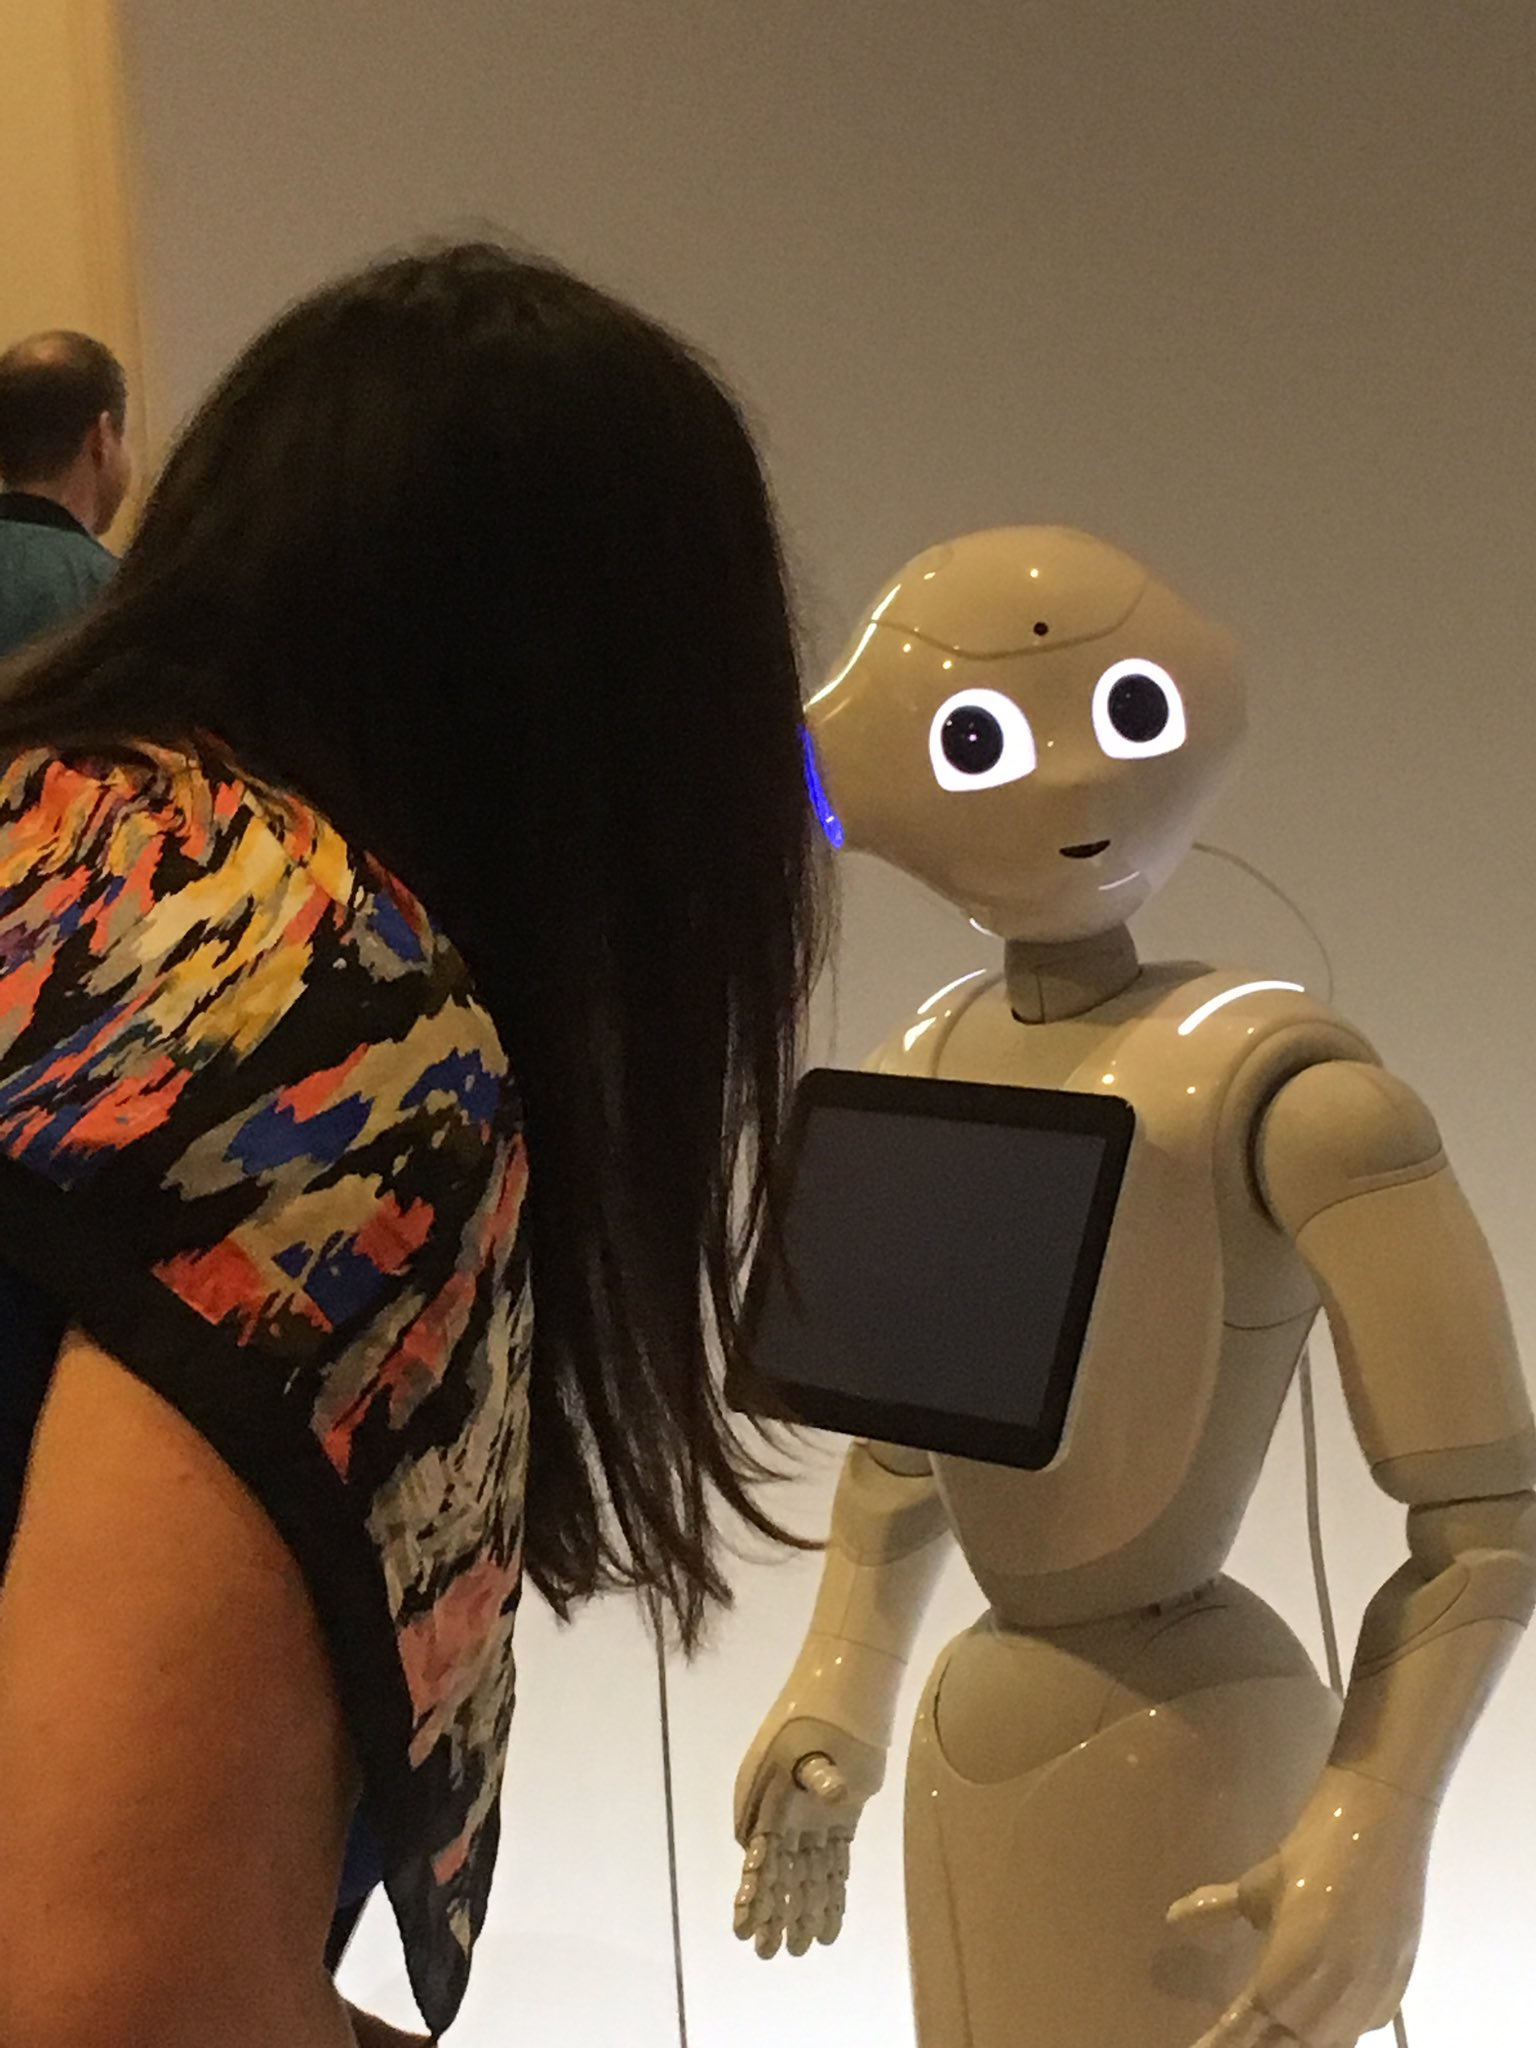 #pepper talking with @annebot at #ibmwow https://t.co/8h1jzZMWV1